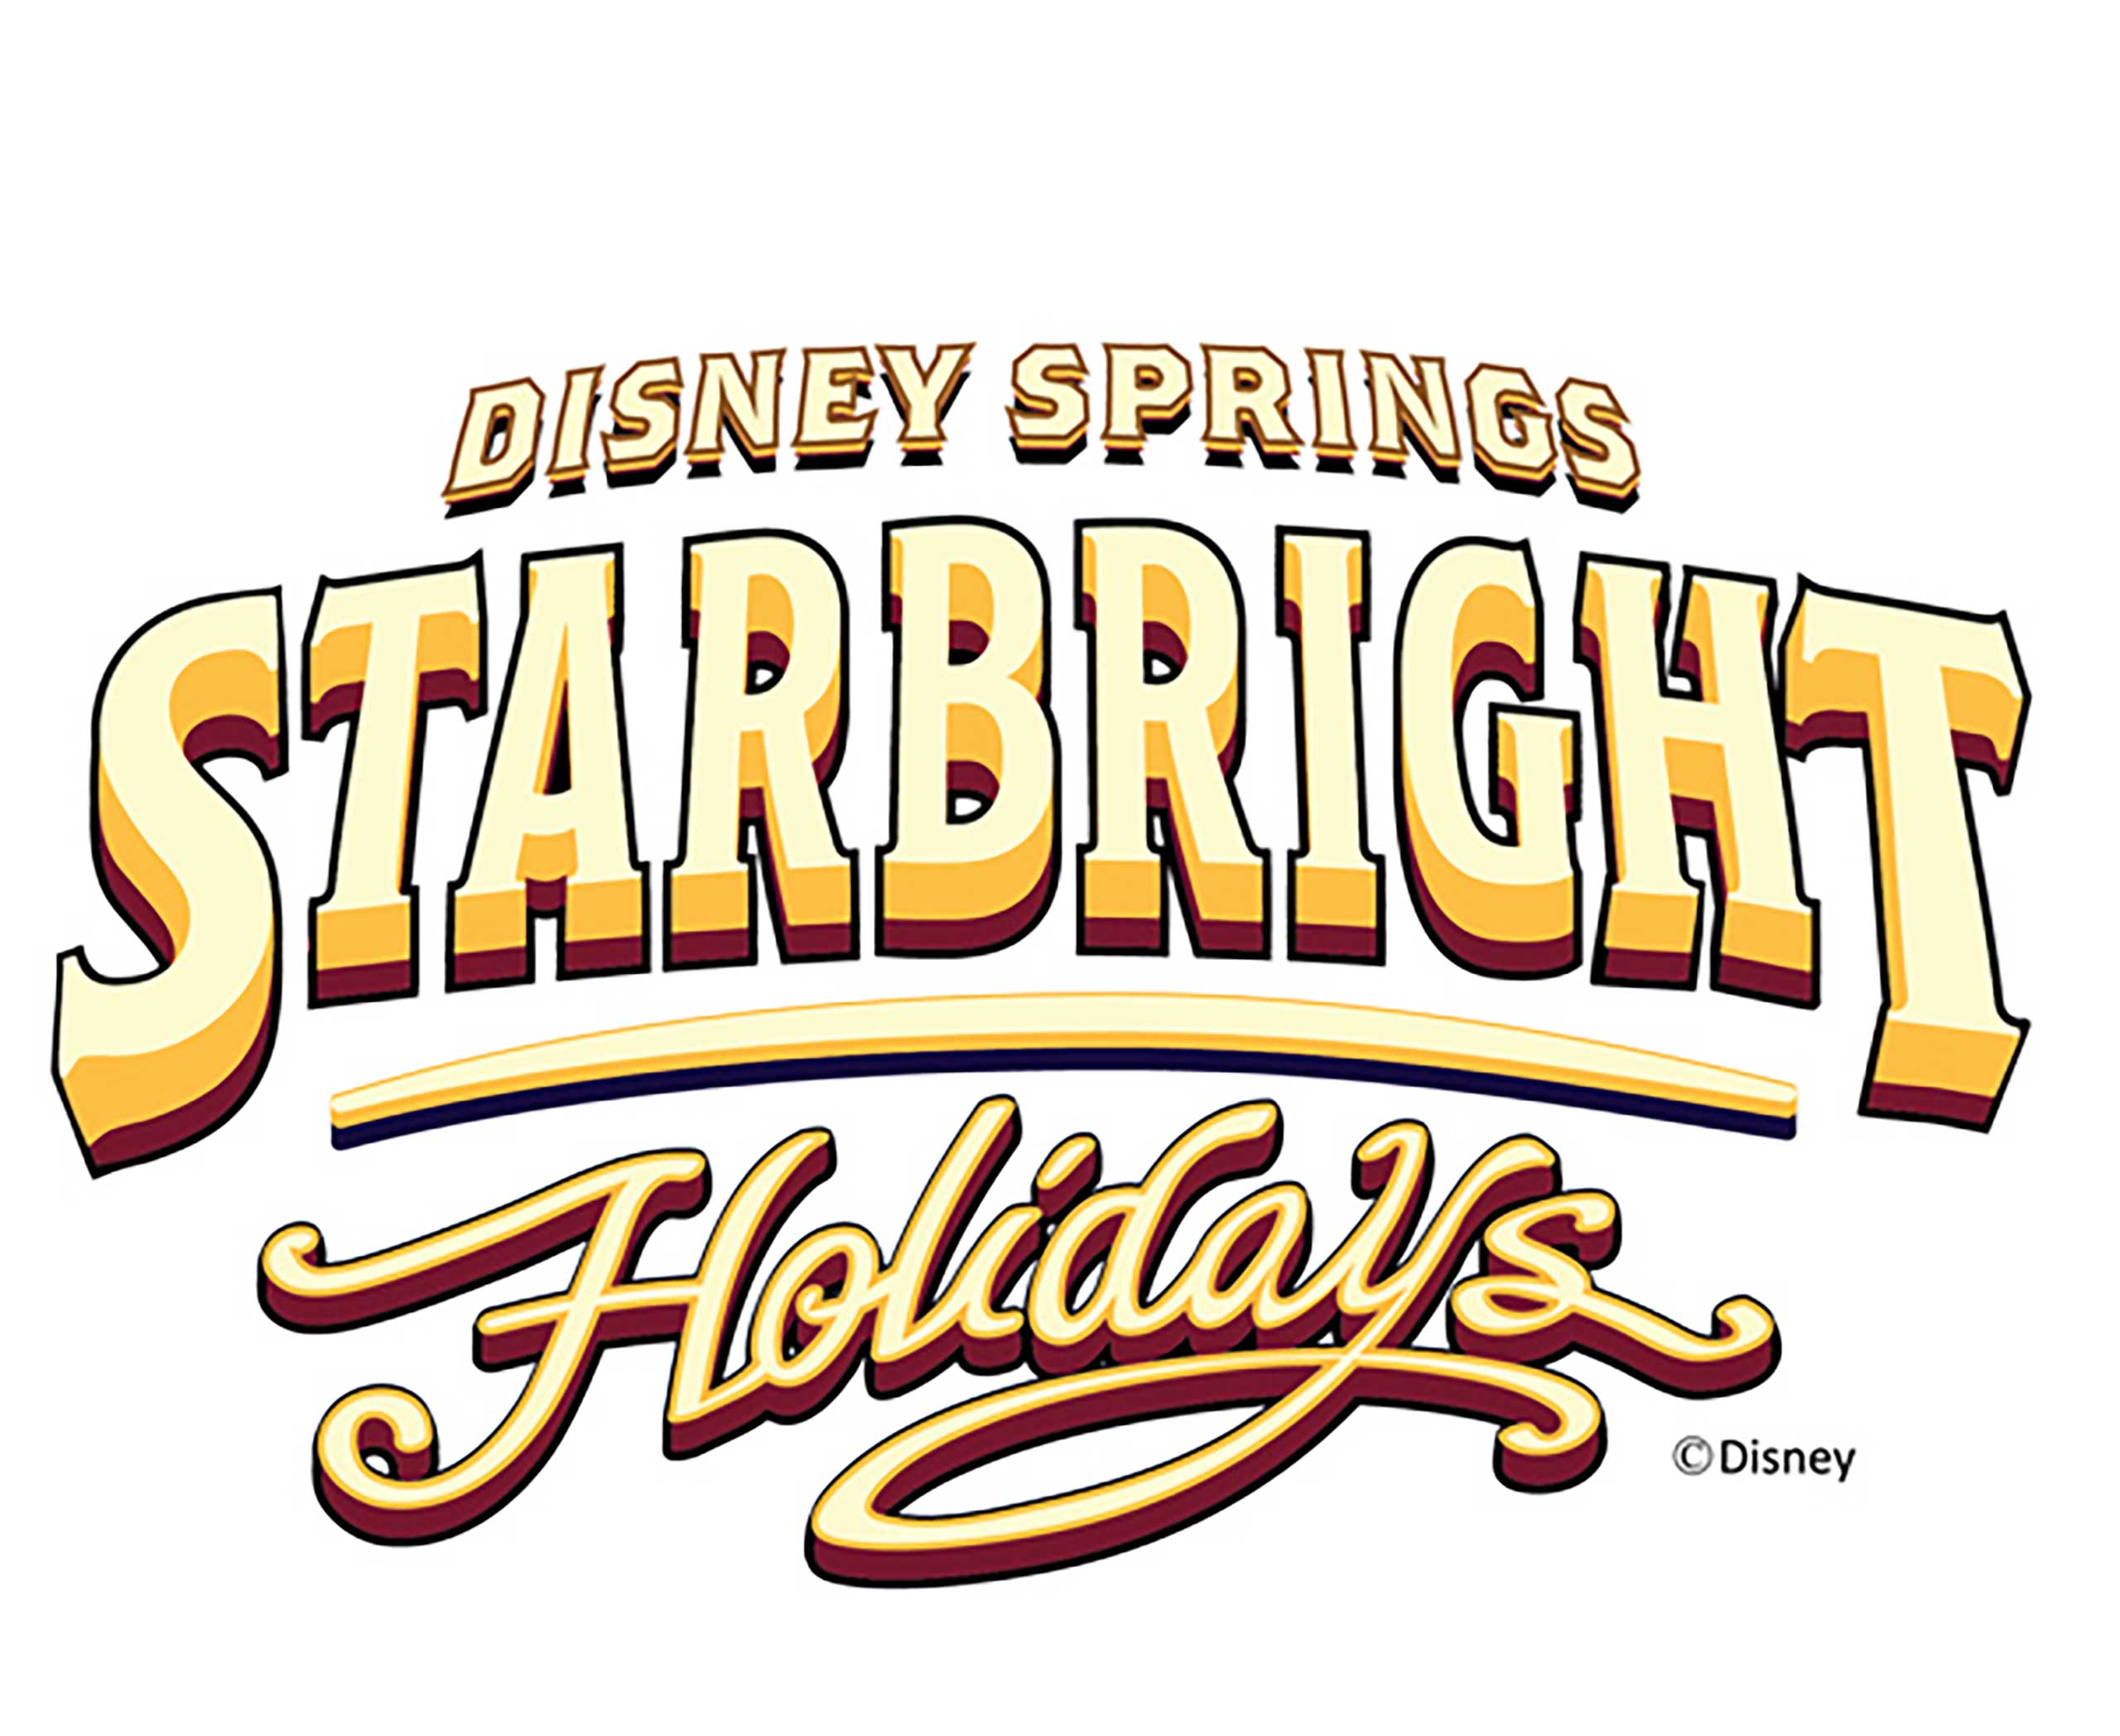 Starbright Holidays logo